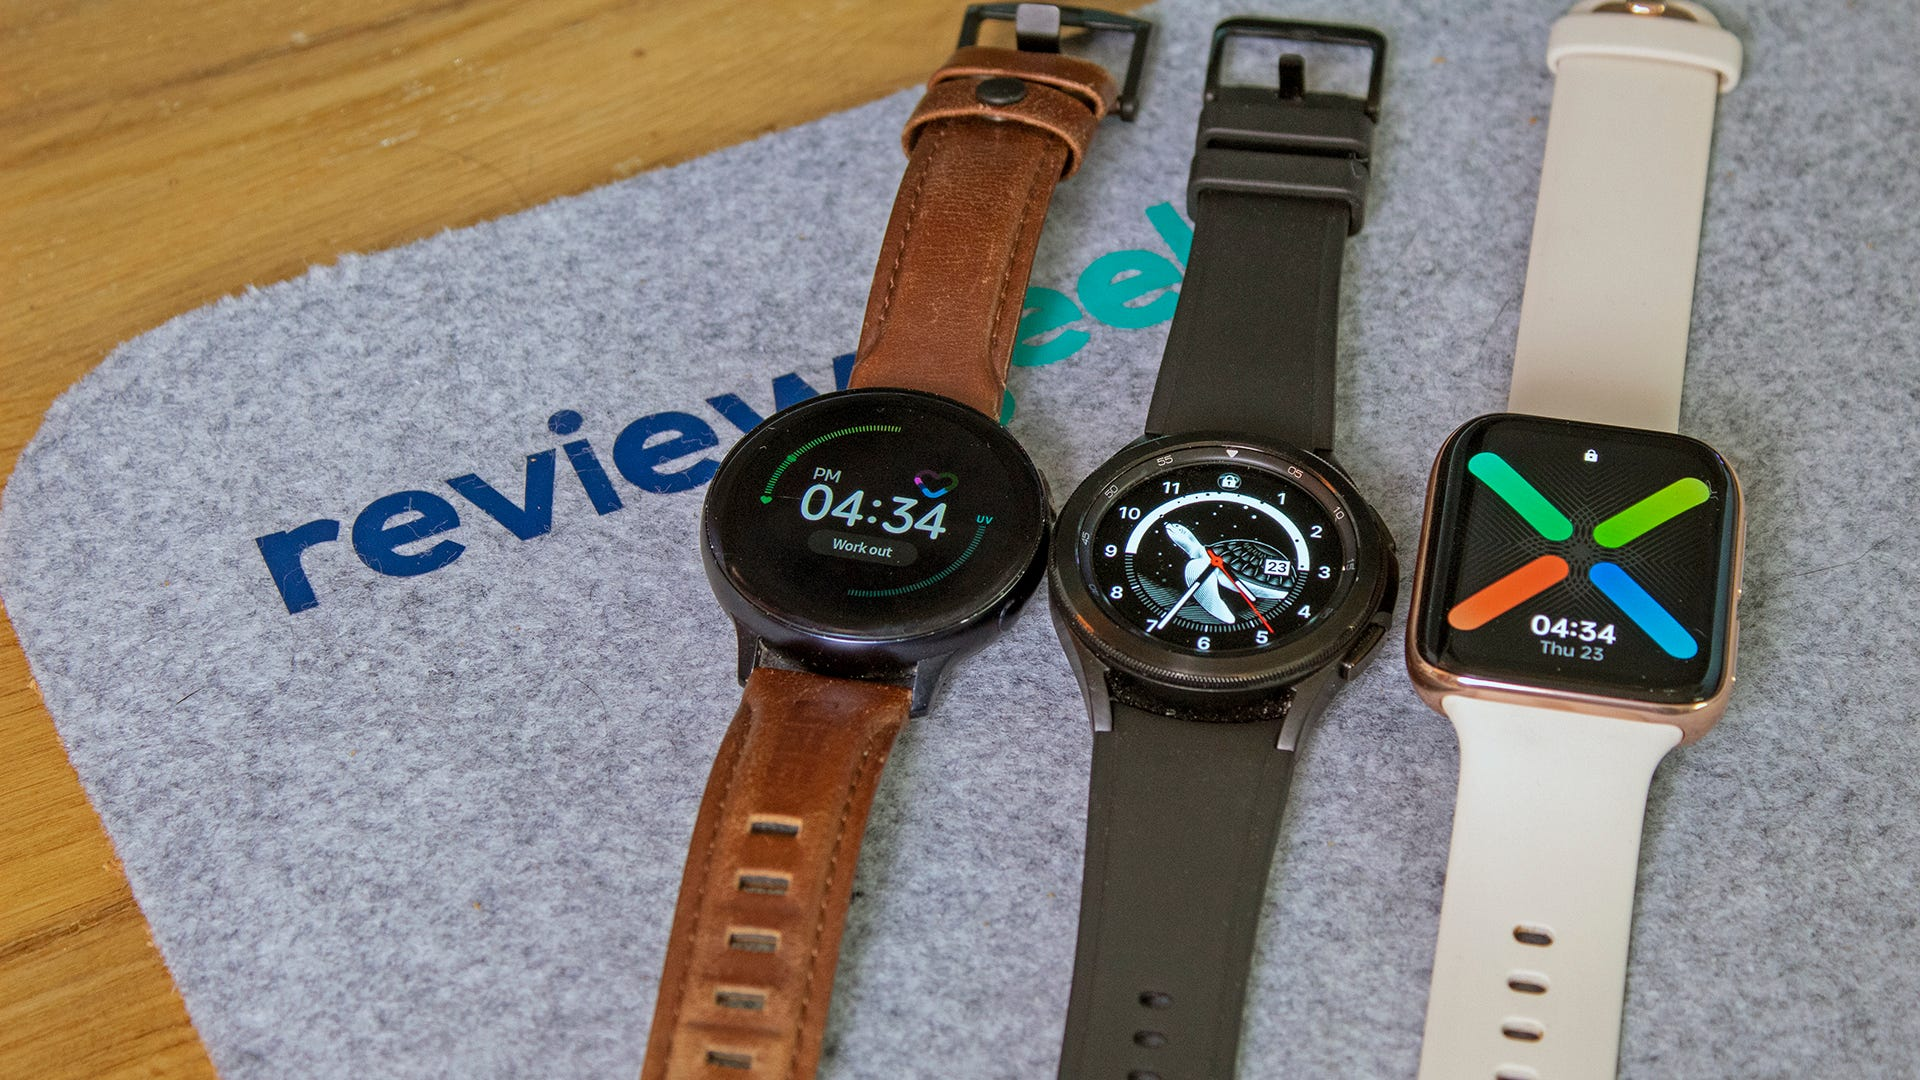 A Galaxy Watch Active 2 next to a Galaxy Watch 4, next to an Oppo Wear OS watch